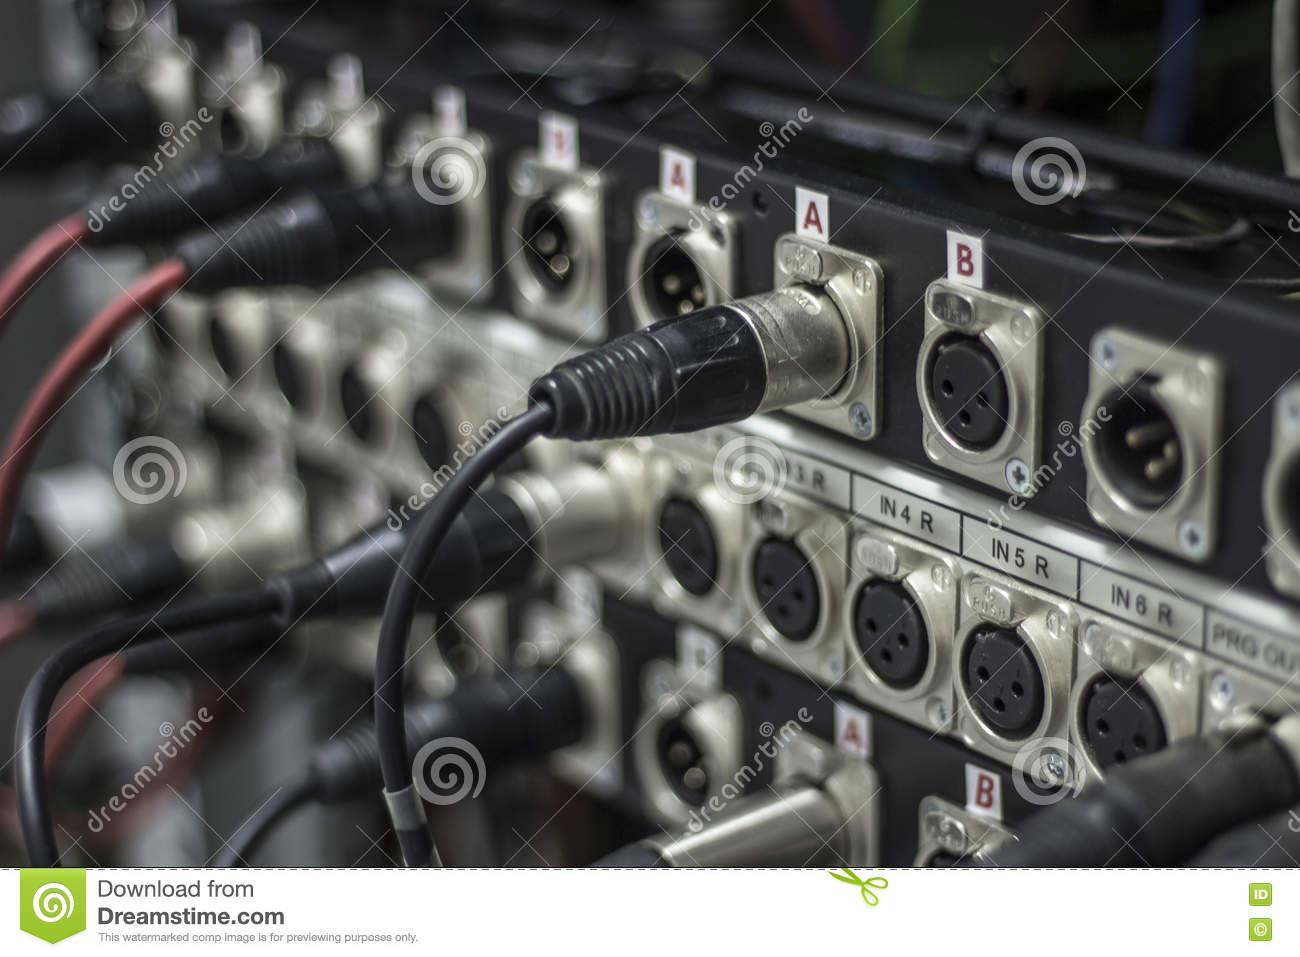 Groovy Xlr Jack Cable Connected At Rear End Of Equipment Stock Photo Wiring Digital Resources Funapmognl